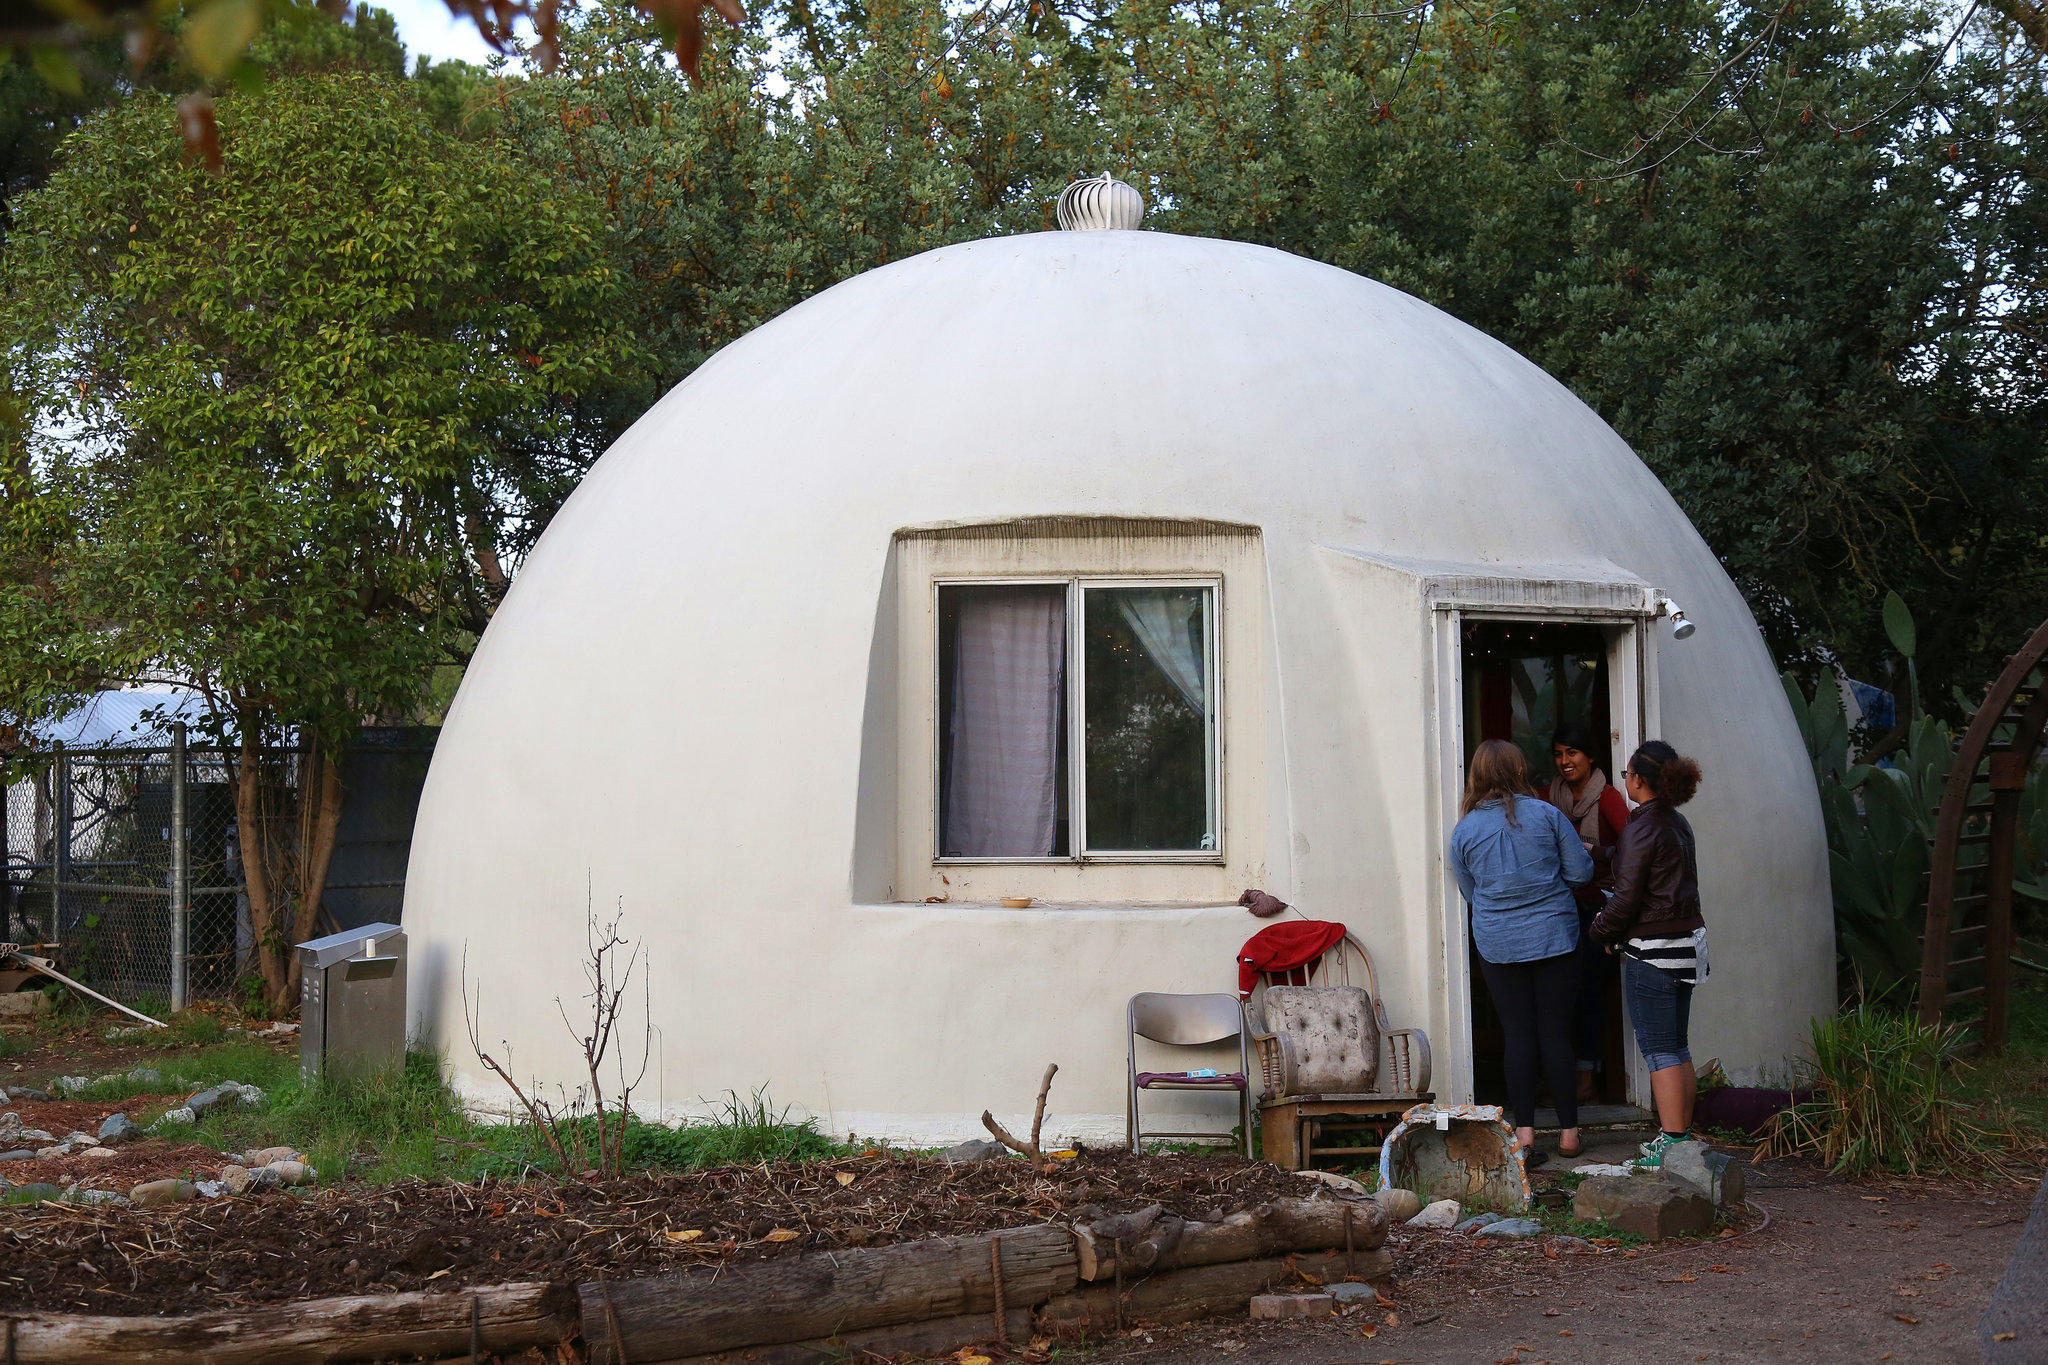 A Counterculture Spirit Flourishes Preserved Under Fiberglass Domes The New York Times